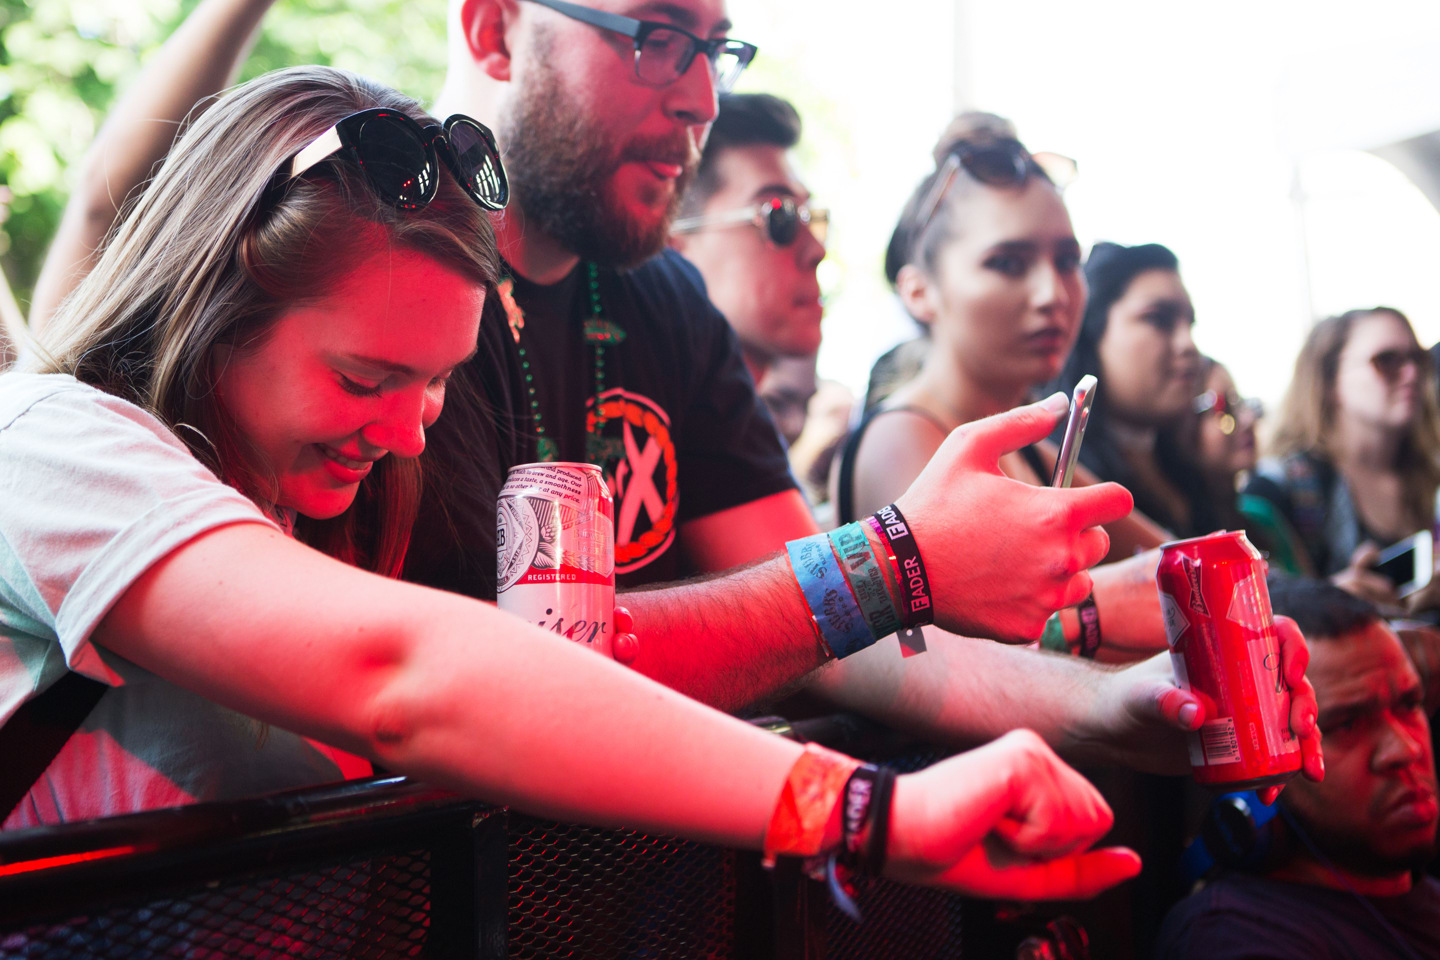 34 Stunning Photos From Friday At The FADER FORT